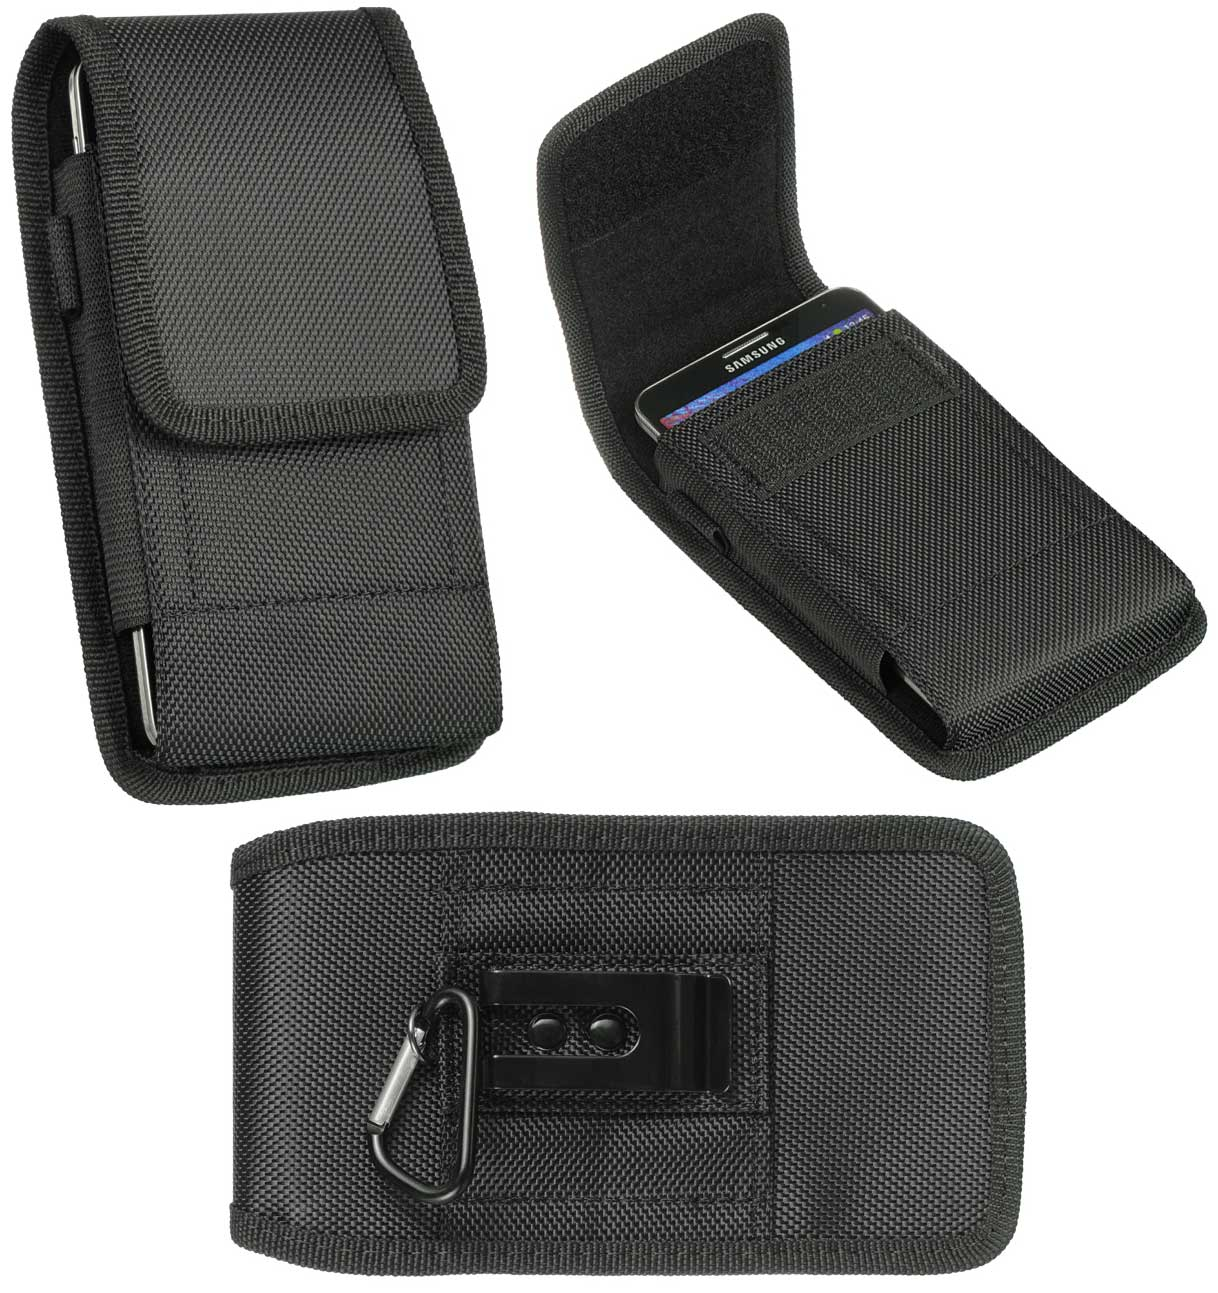 Nokia Lumia 520 Neoprene Nylon Case Pouch Clip Hook Black